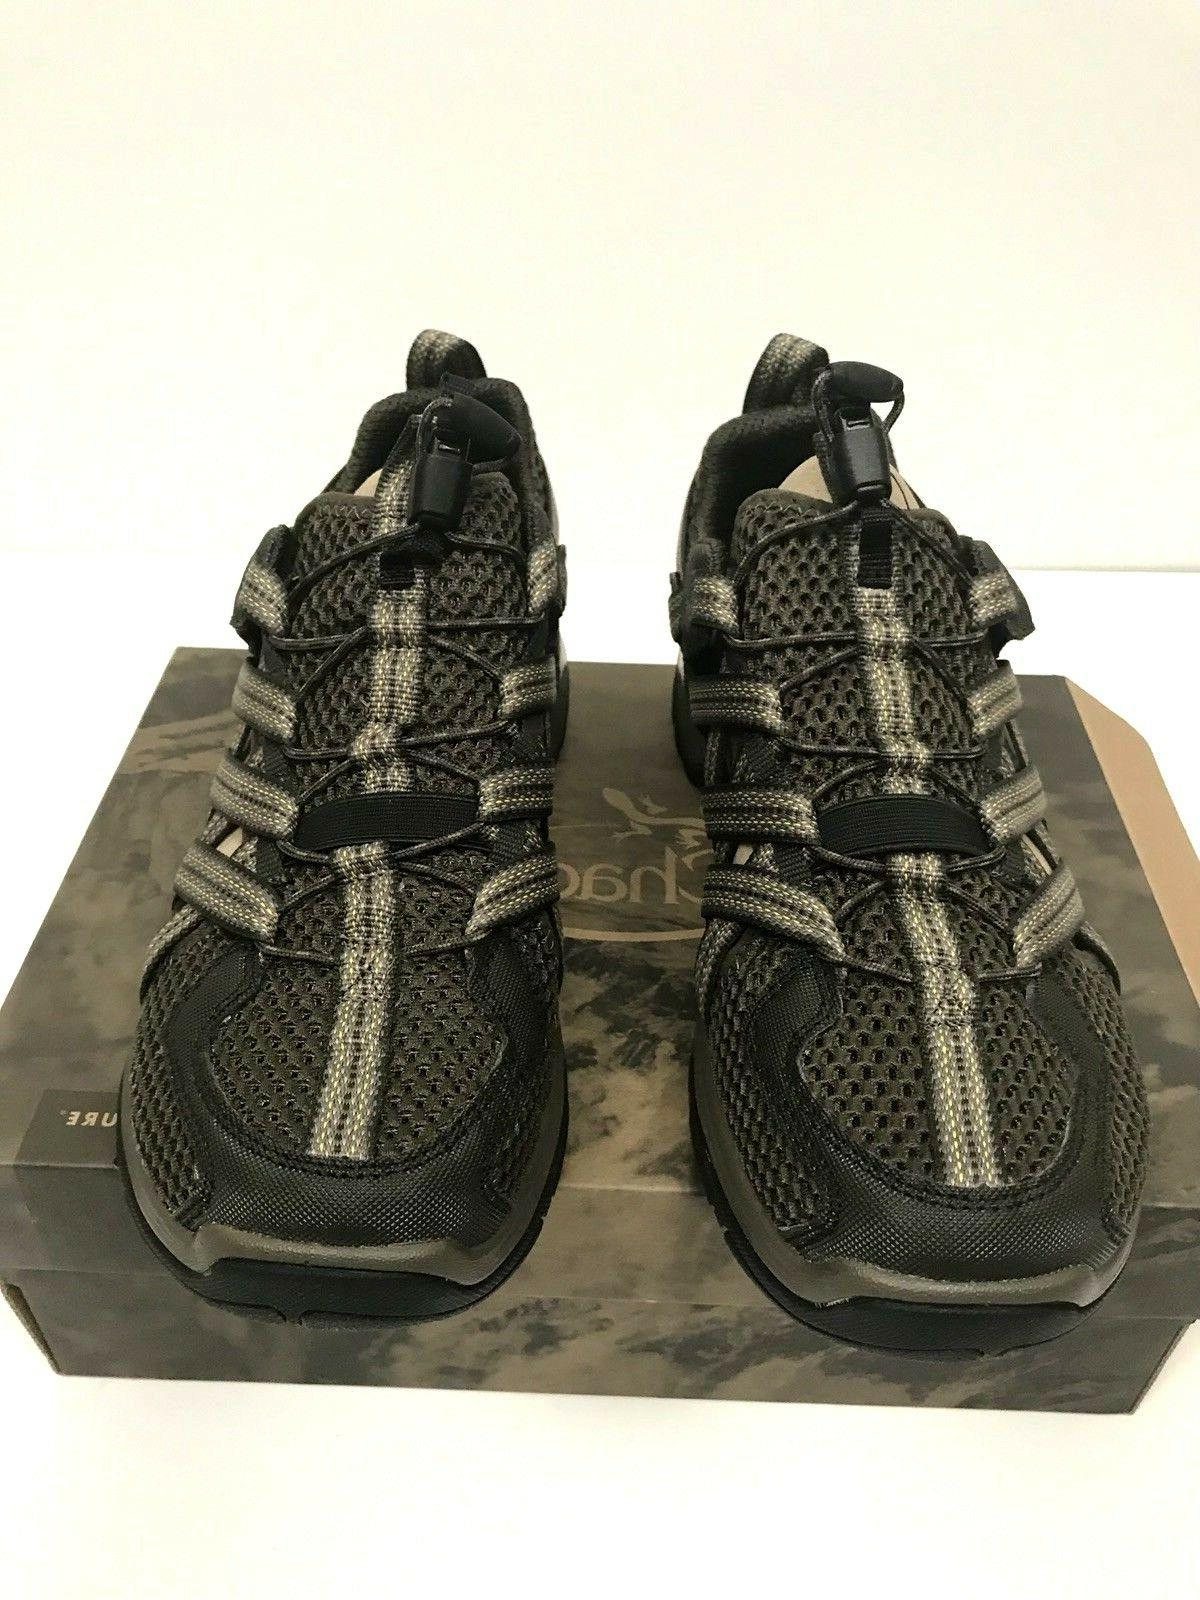 CHACO Mens Outcross Evo 1 Outdoor Athletic Trail Hiking Water 10.5